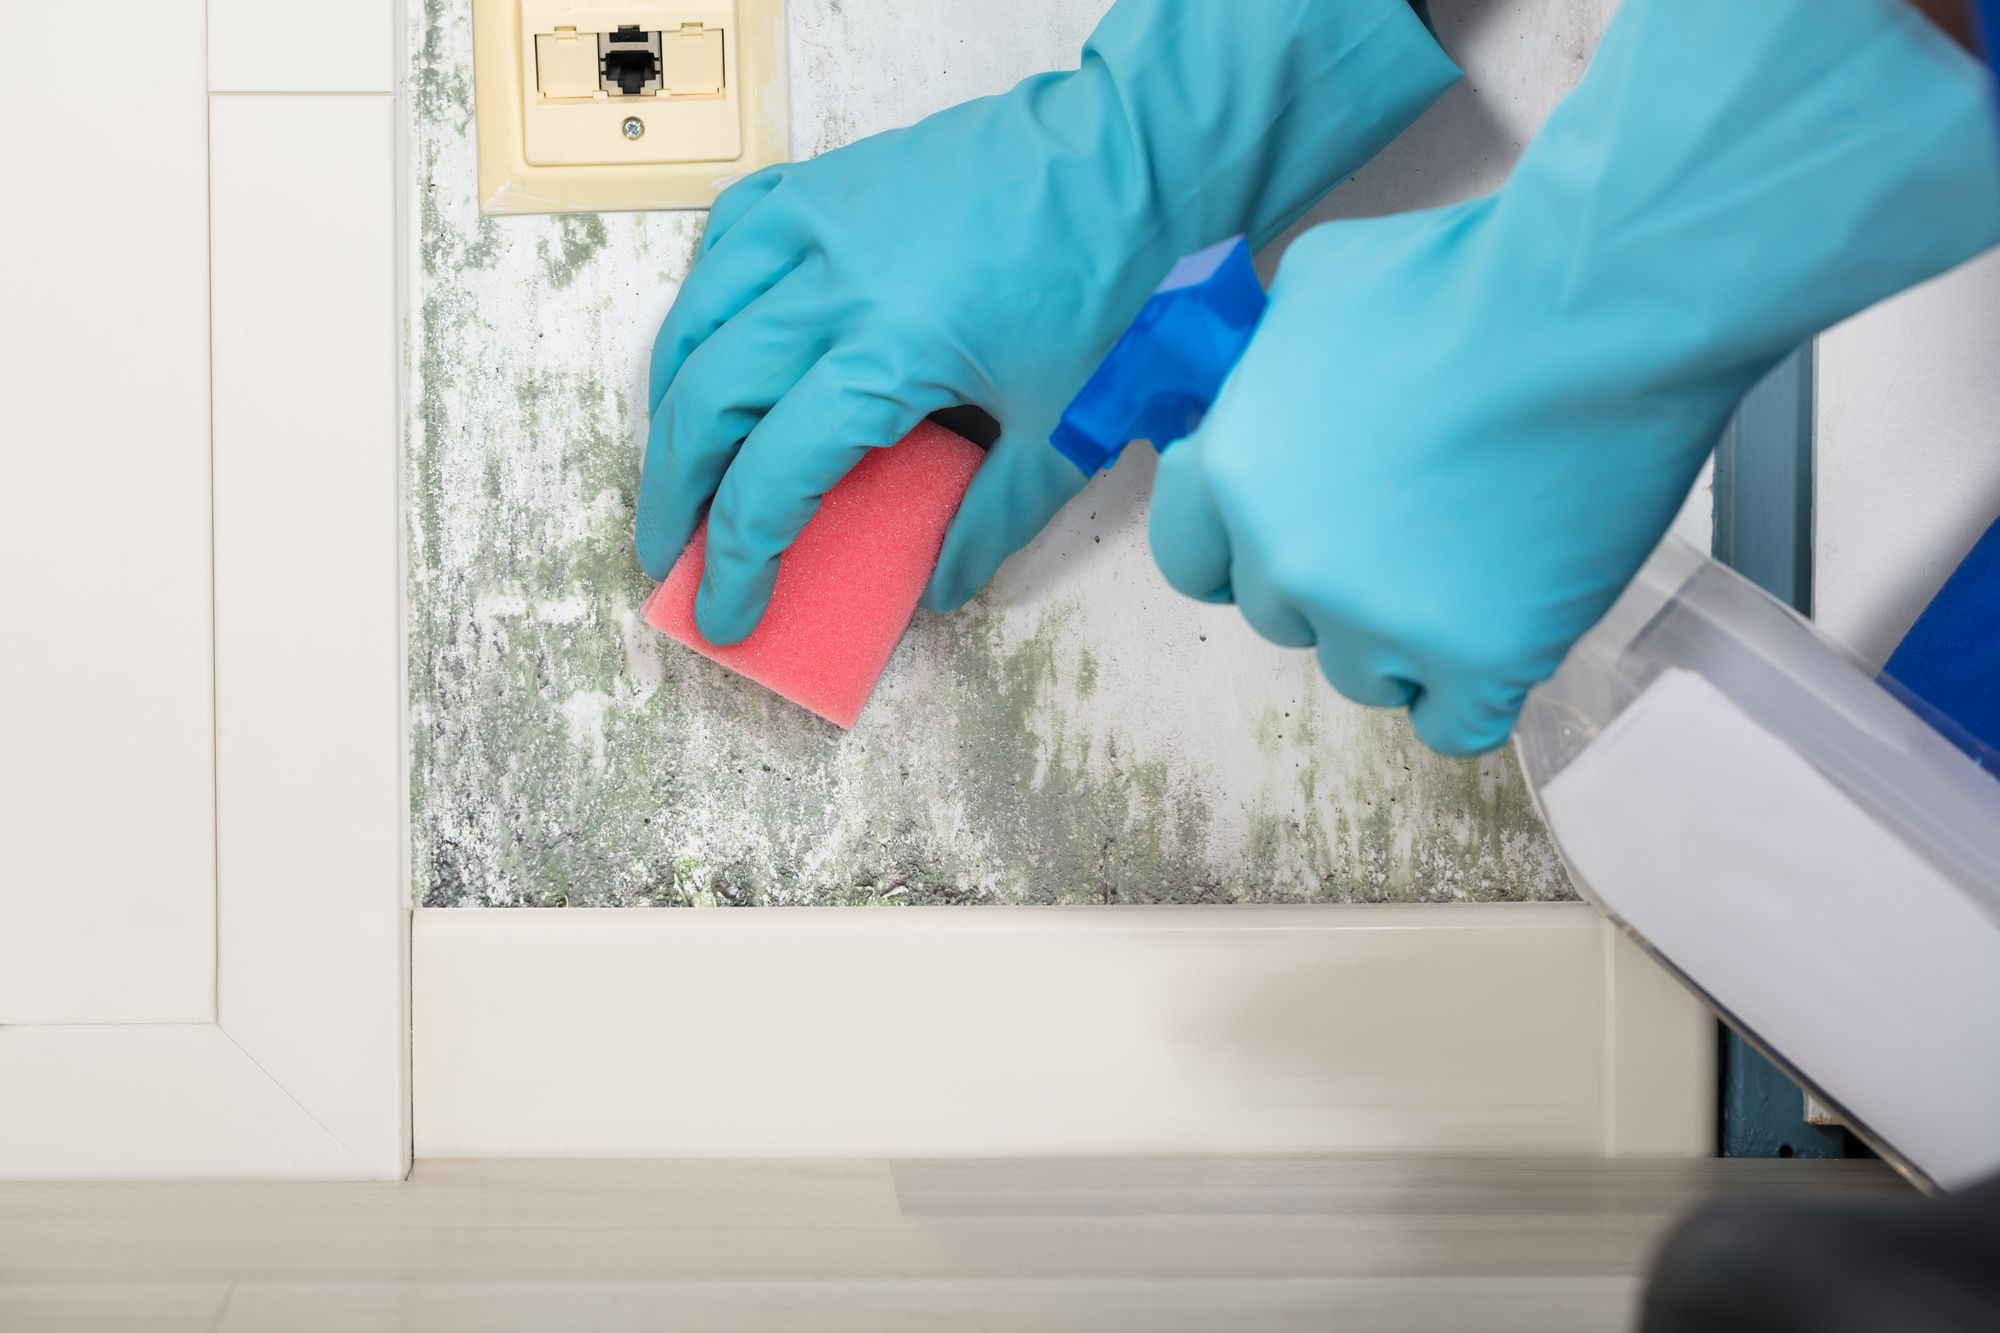 A PROFESSIONAL MOLD REMOVAL SERVICE IS A GOOD INVESTMENT